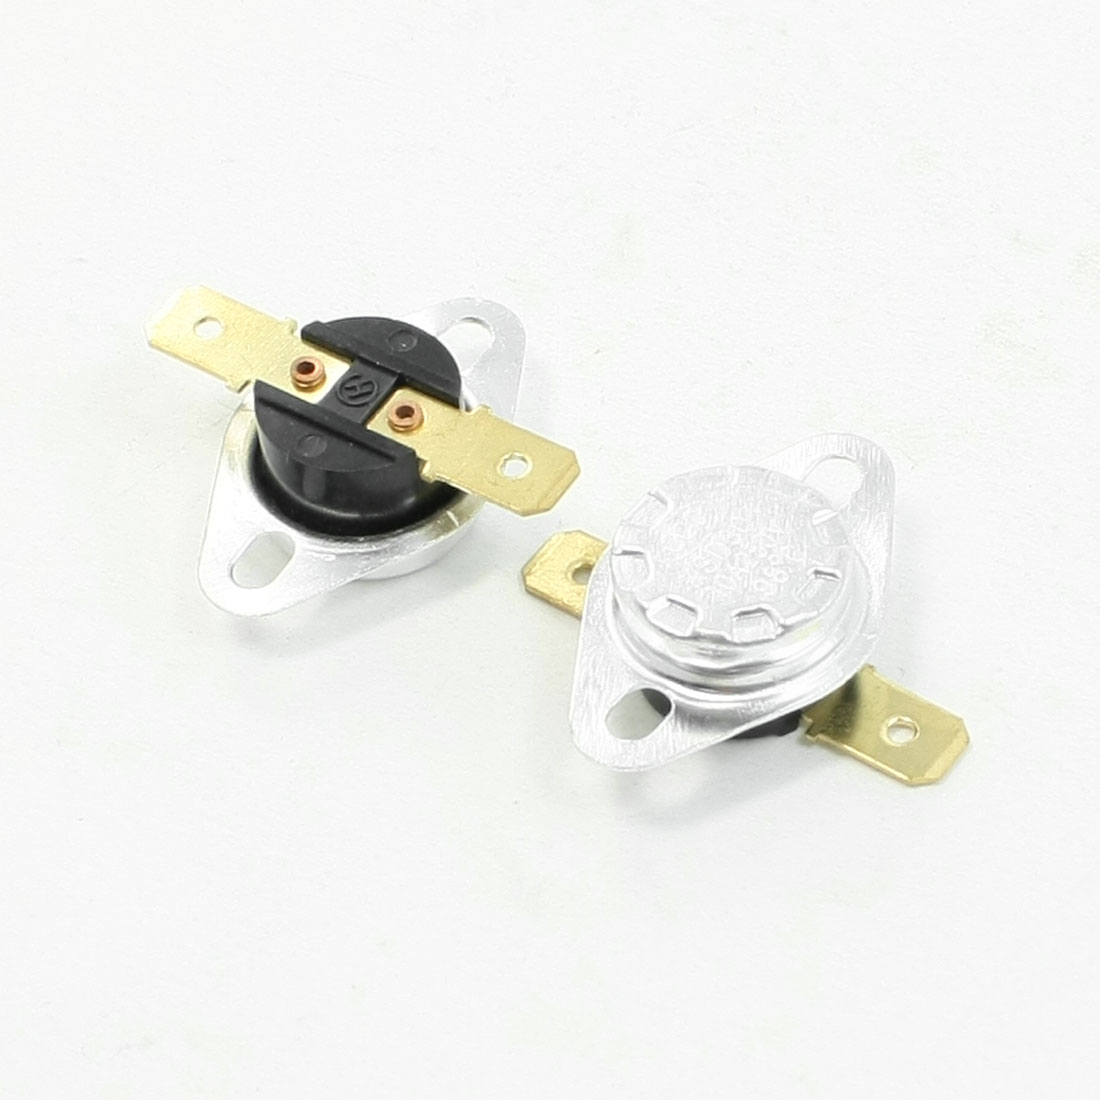 2 Pcs 250V 10A 98 Celsius 208.4F Normal Close Temperature Switch KSD301